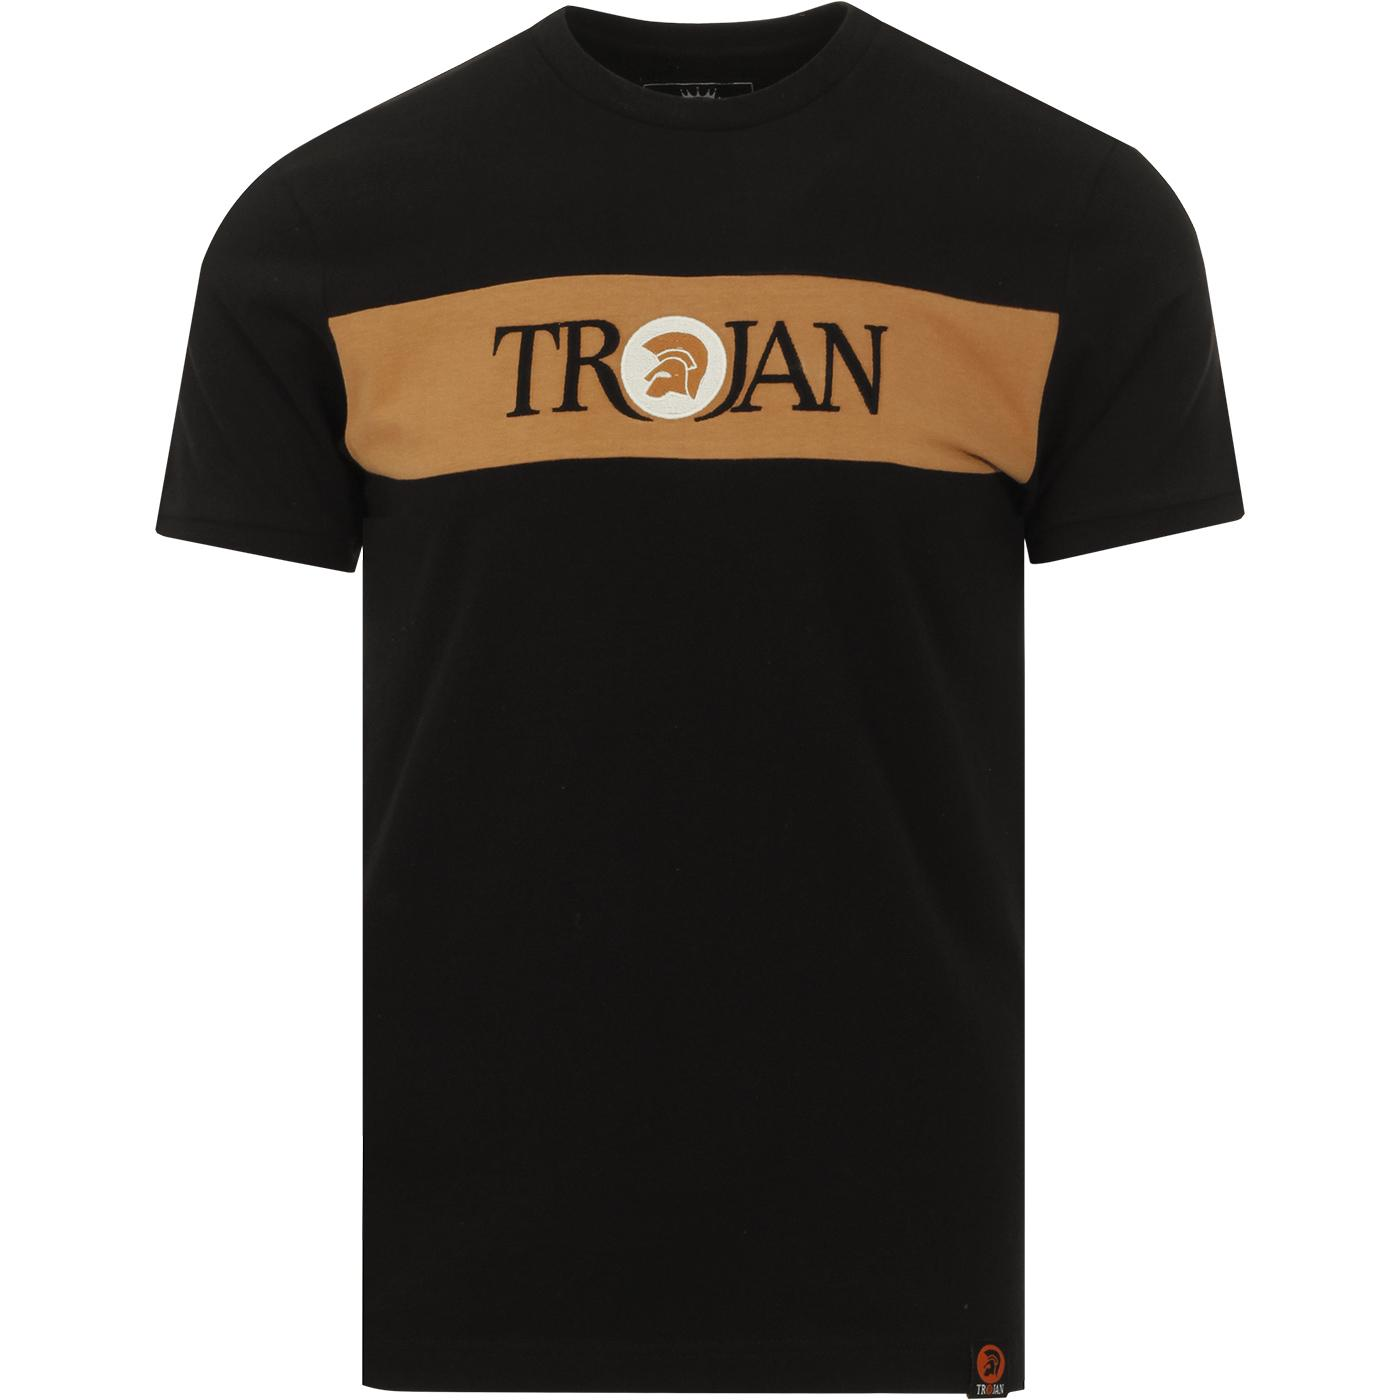 TROJAN RECORDS Mod Block Stripe Signature Tee (B)